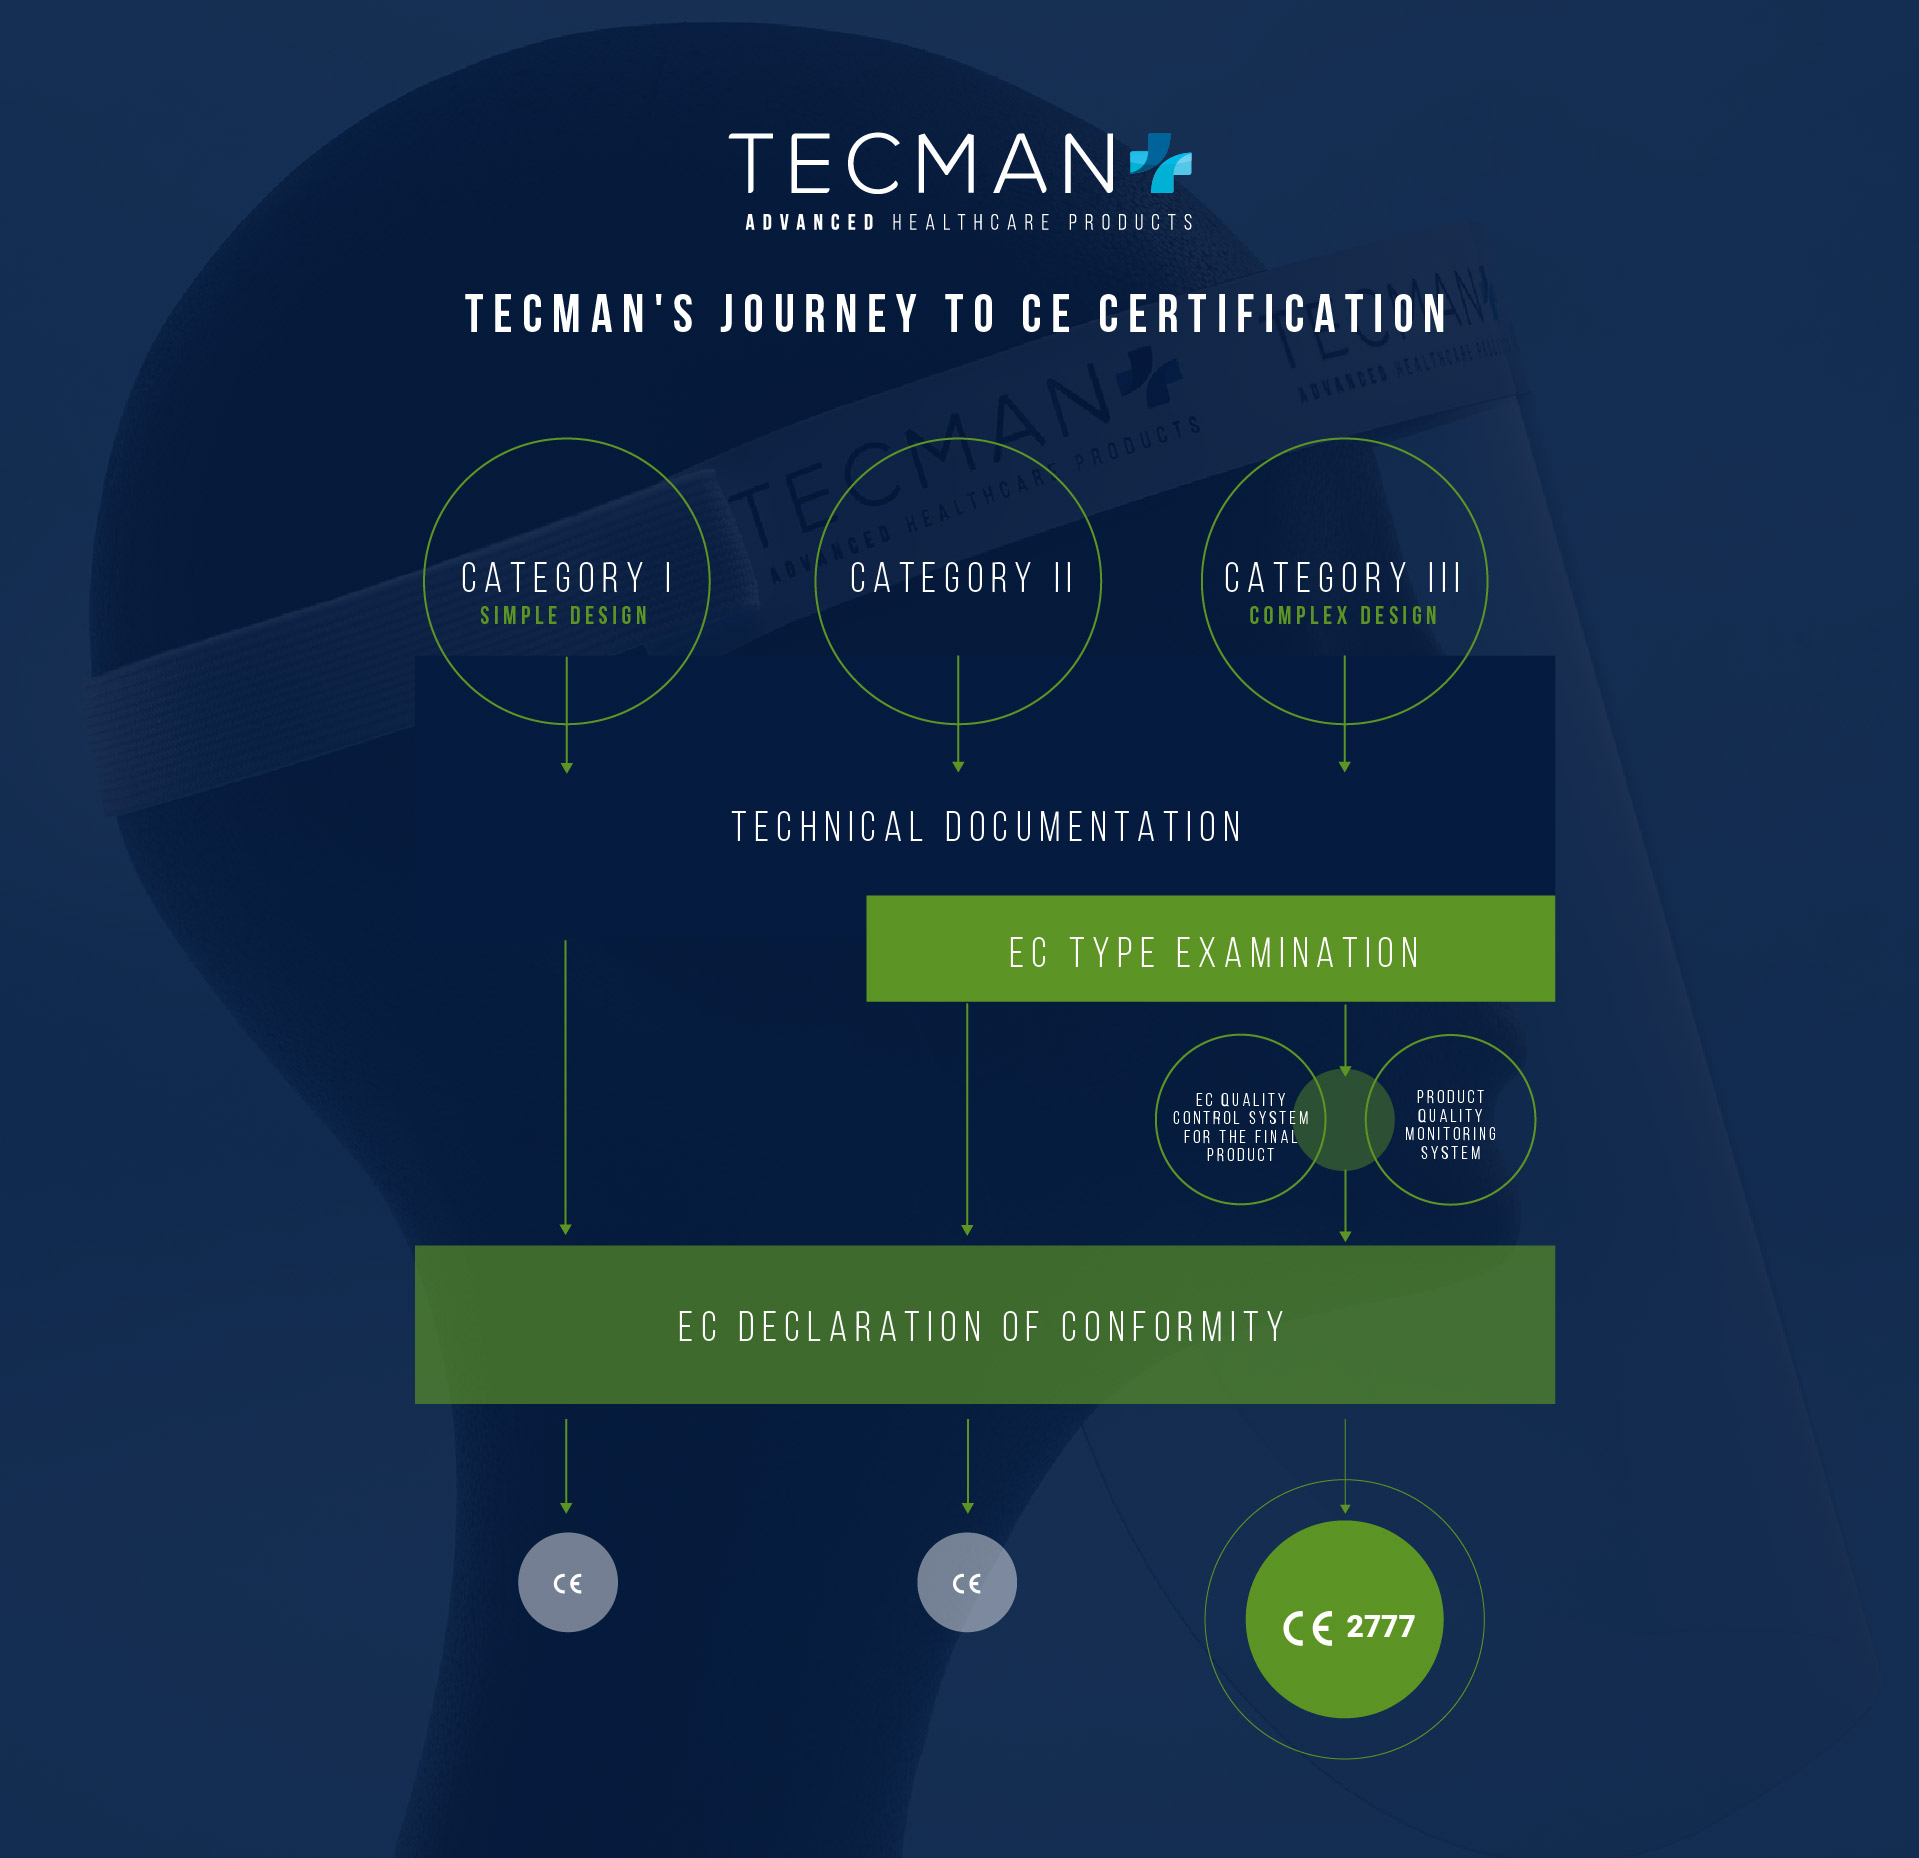 TECMAN'S JOURNEY TO CE CERTIFICATION